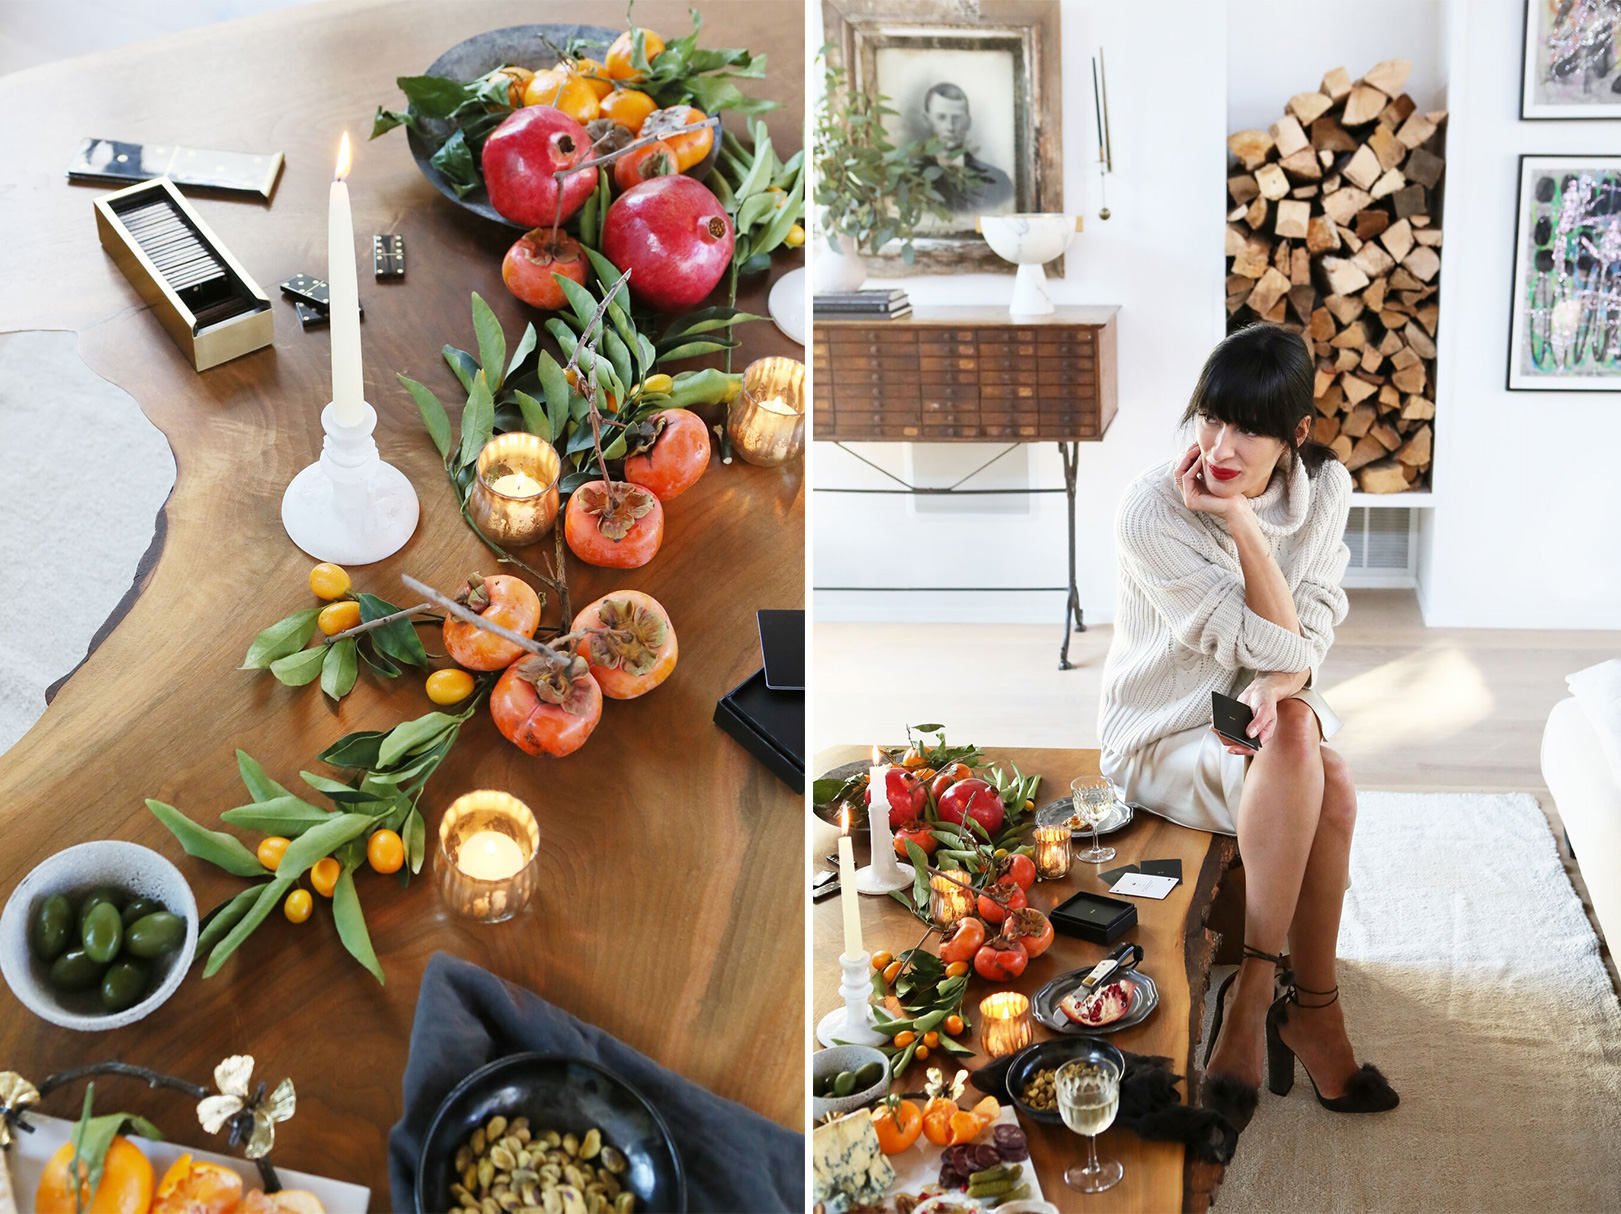 Entertaining At Home Stunning 5 Tips For Holiday Entertaining At Home  Goop Review